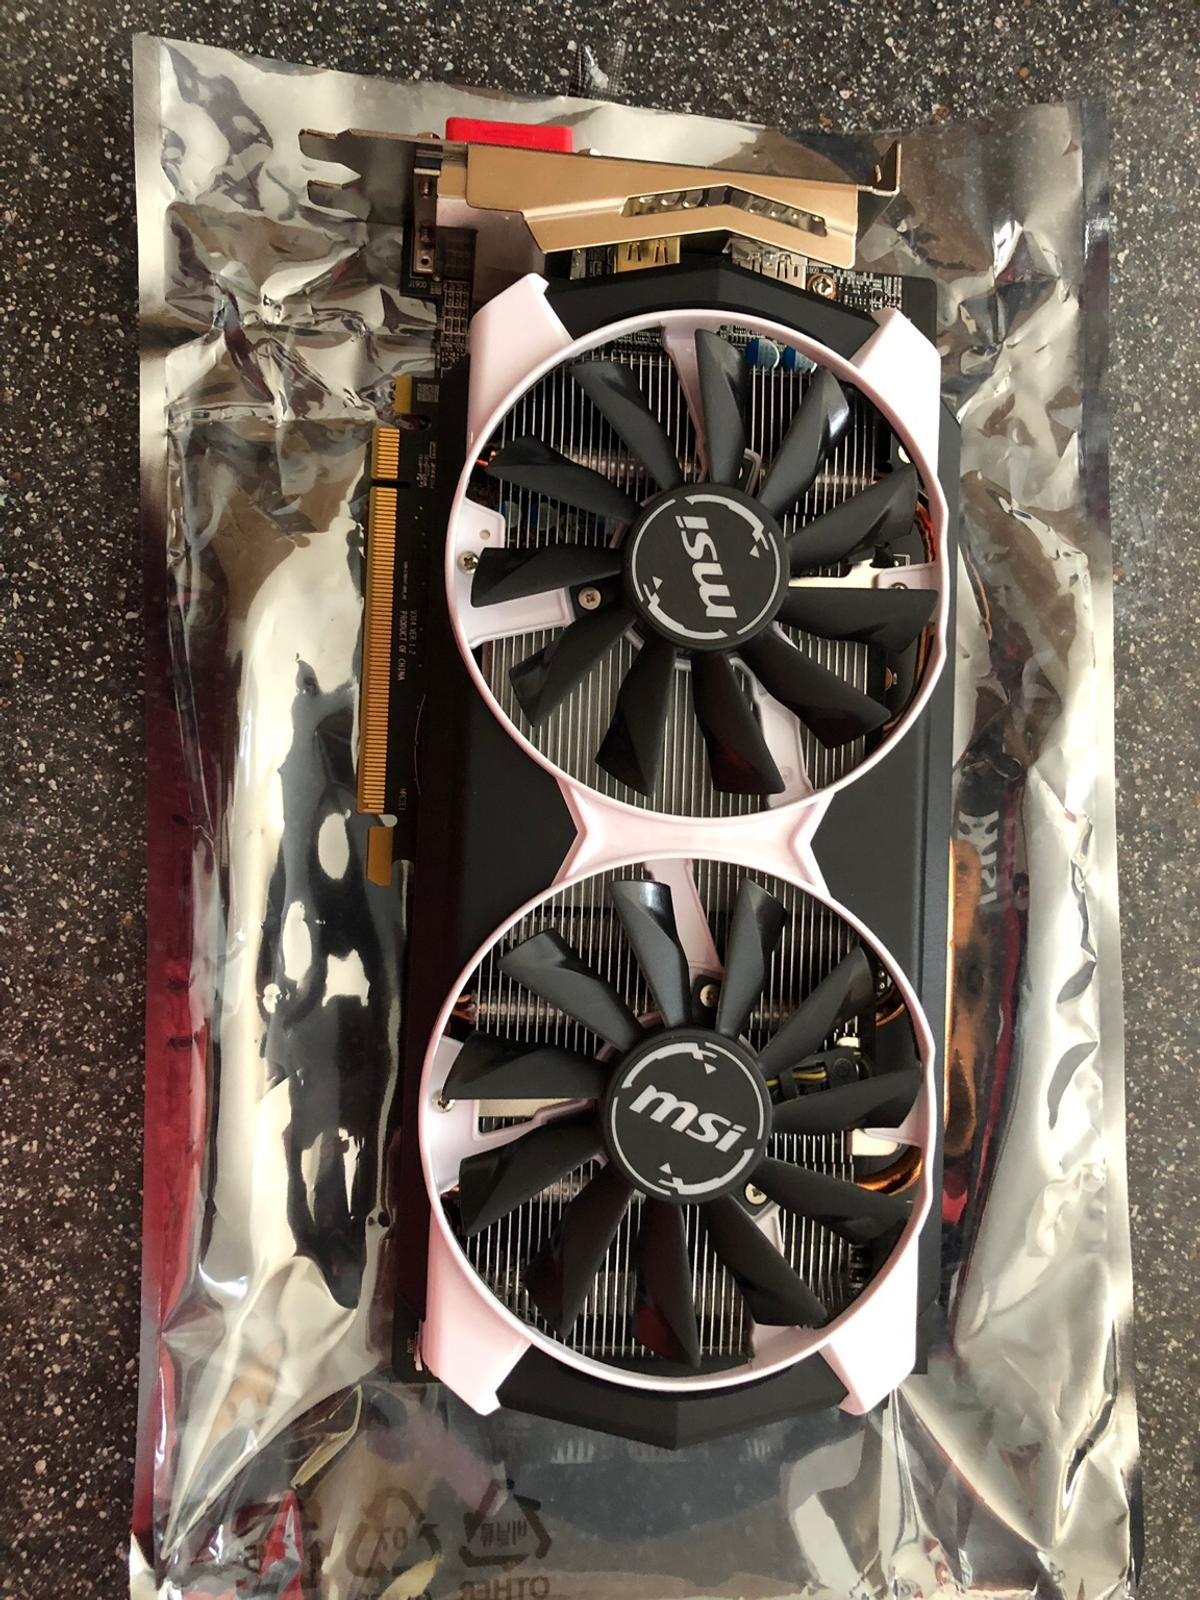 MSI AMD Radeon R9 380 2GB in E16 Newham for £60 00 for sale - Shpock